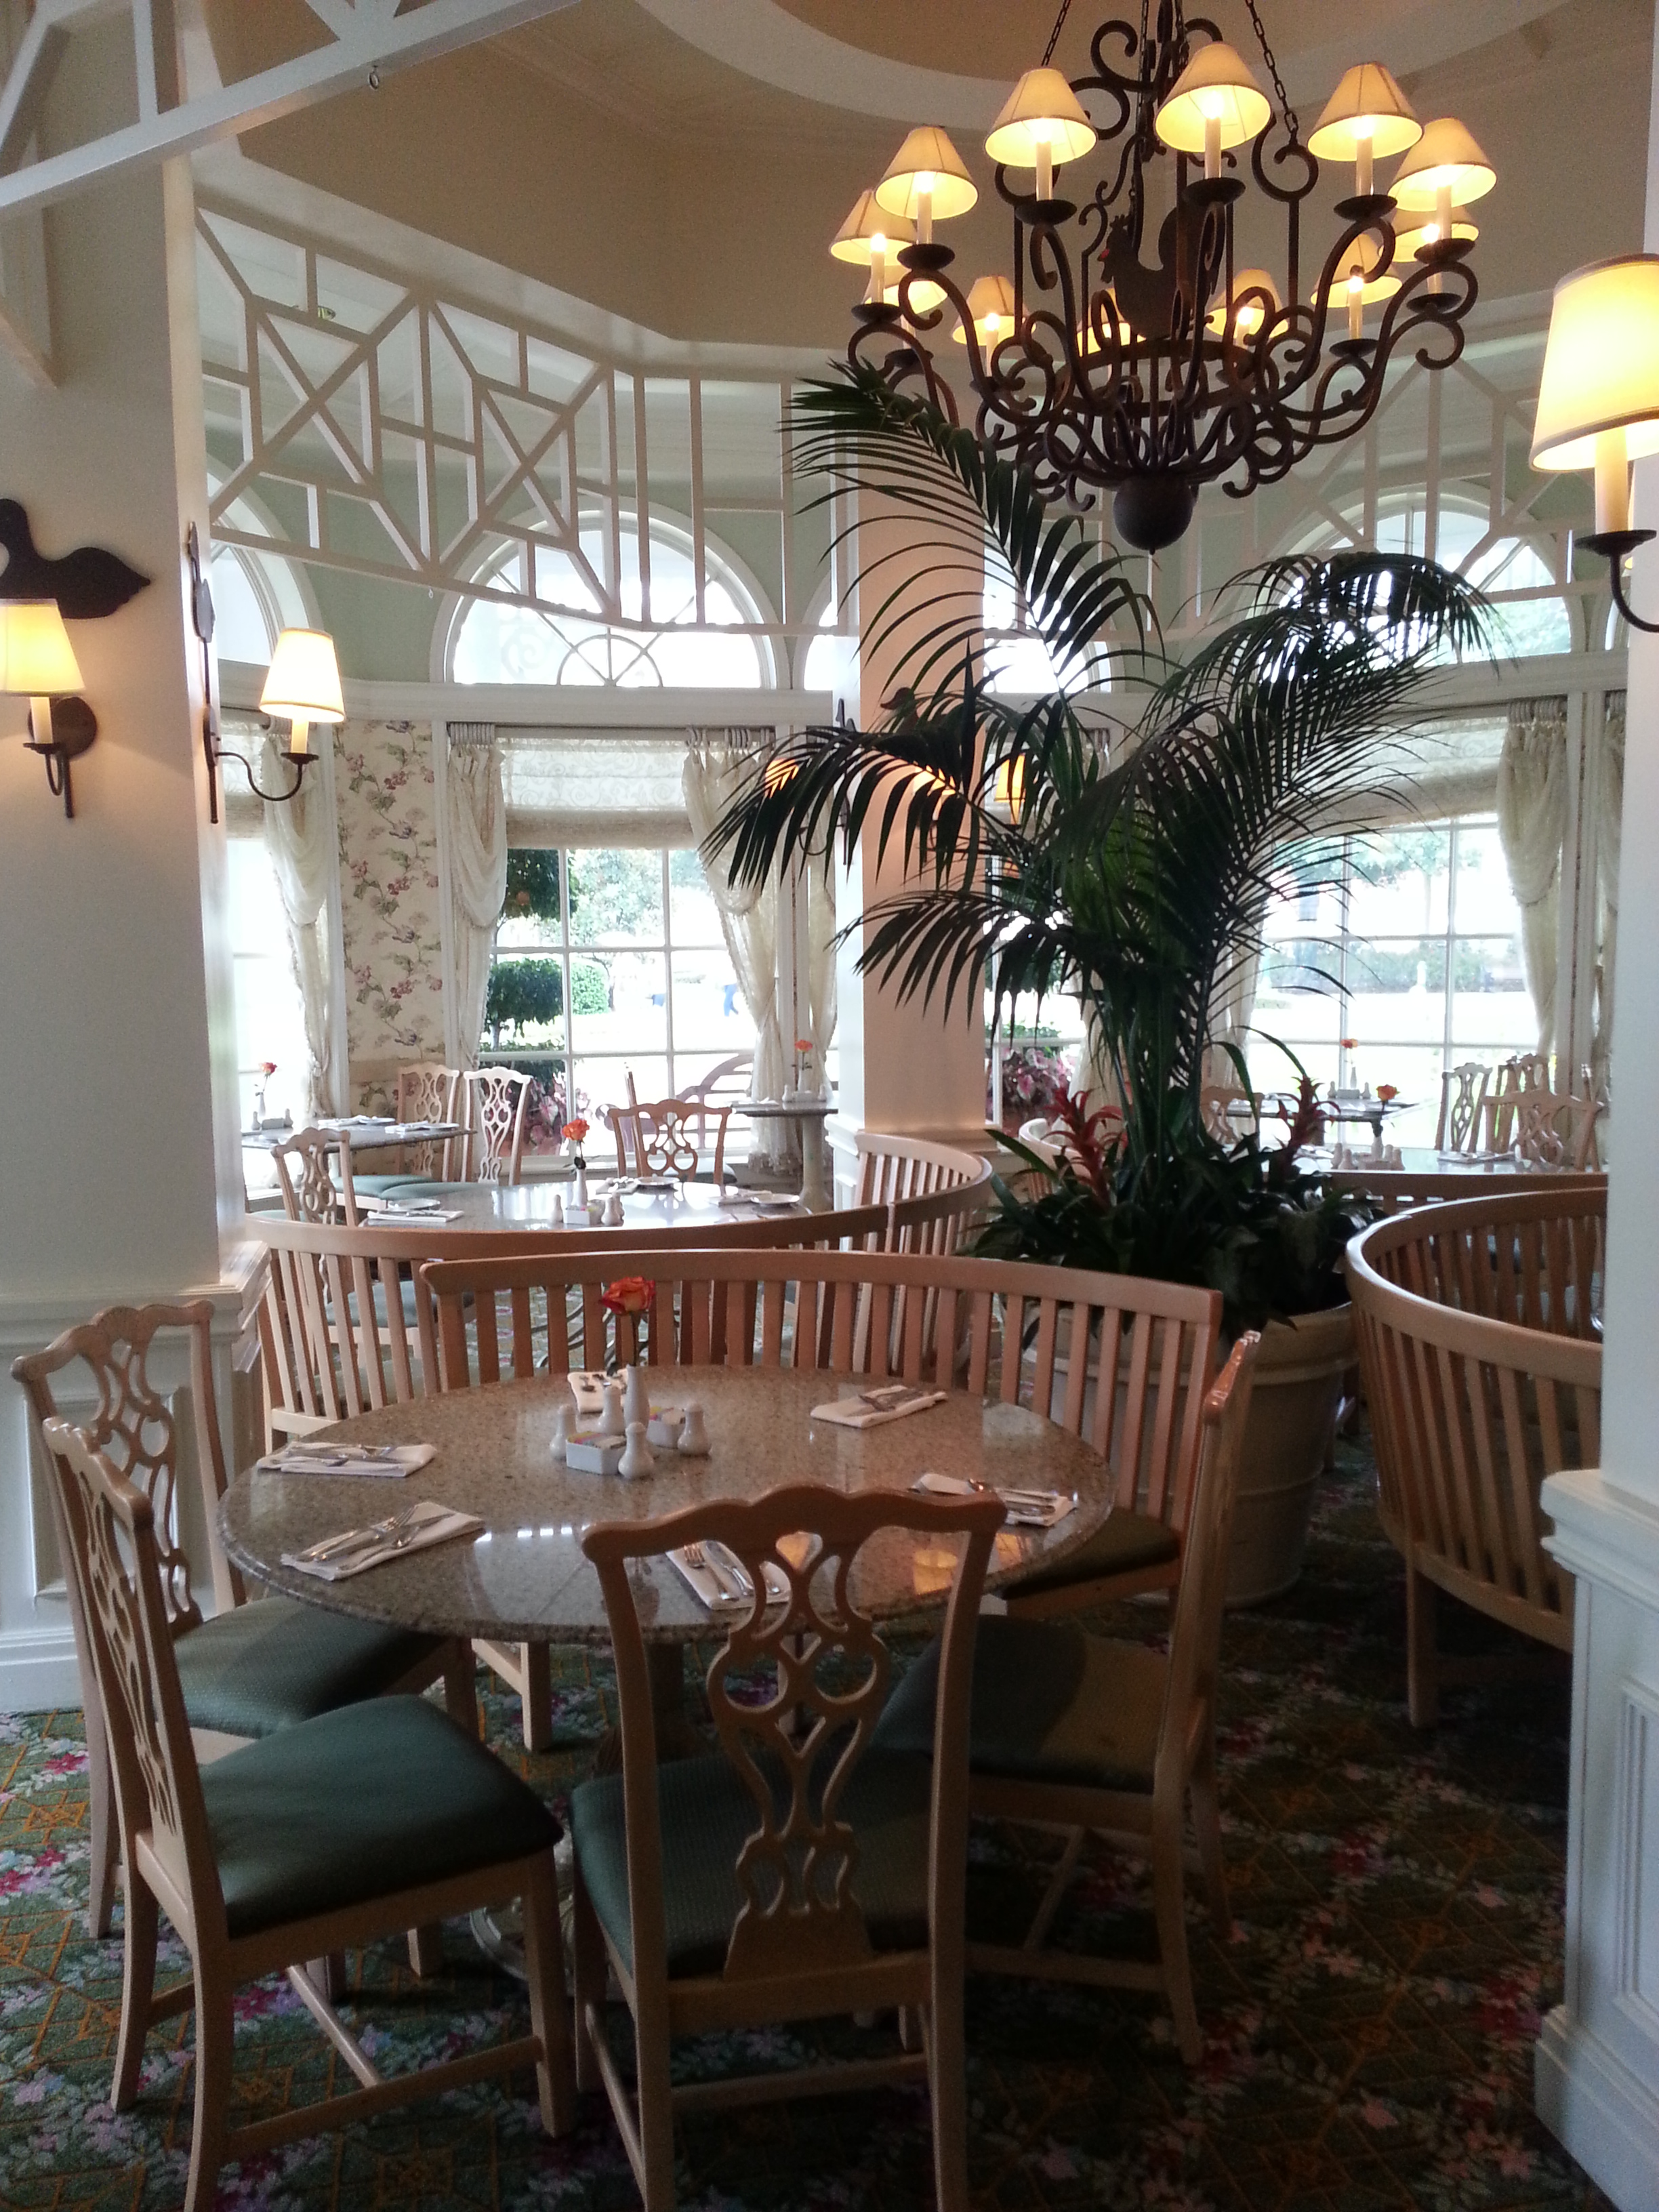 The Chandelier, Cozy Furniture, And Beautiful Views Delight At The Grand  Floridian Cafe. Photo By Donna Fesel.